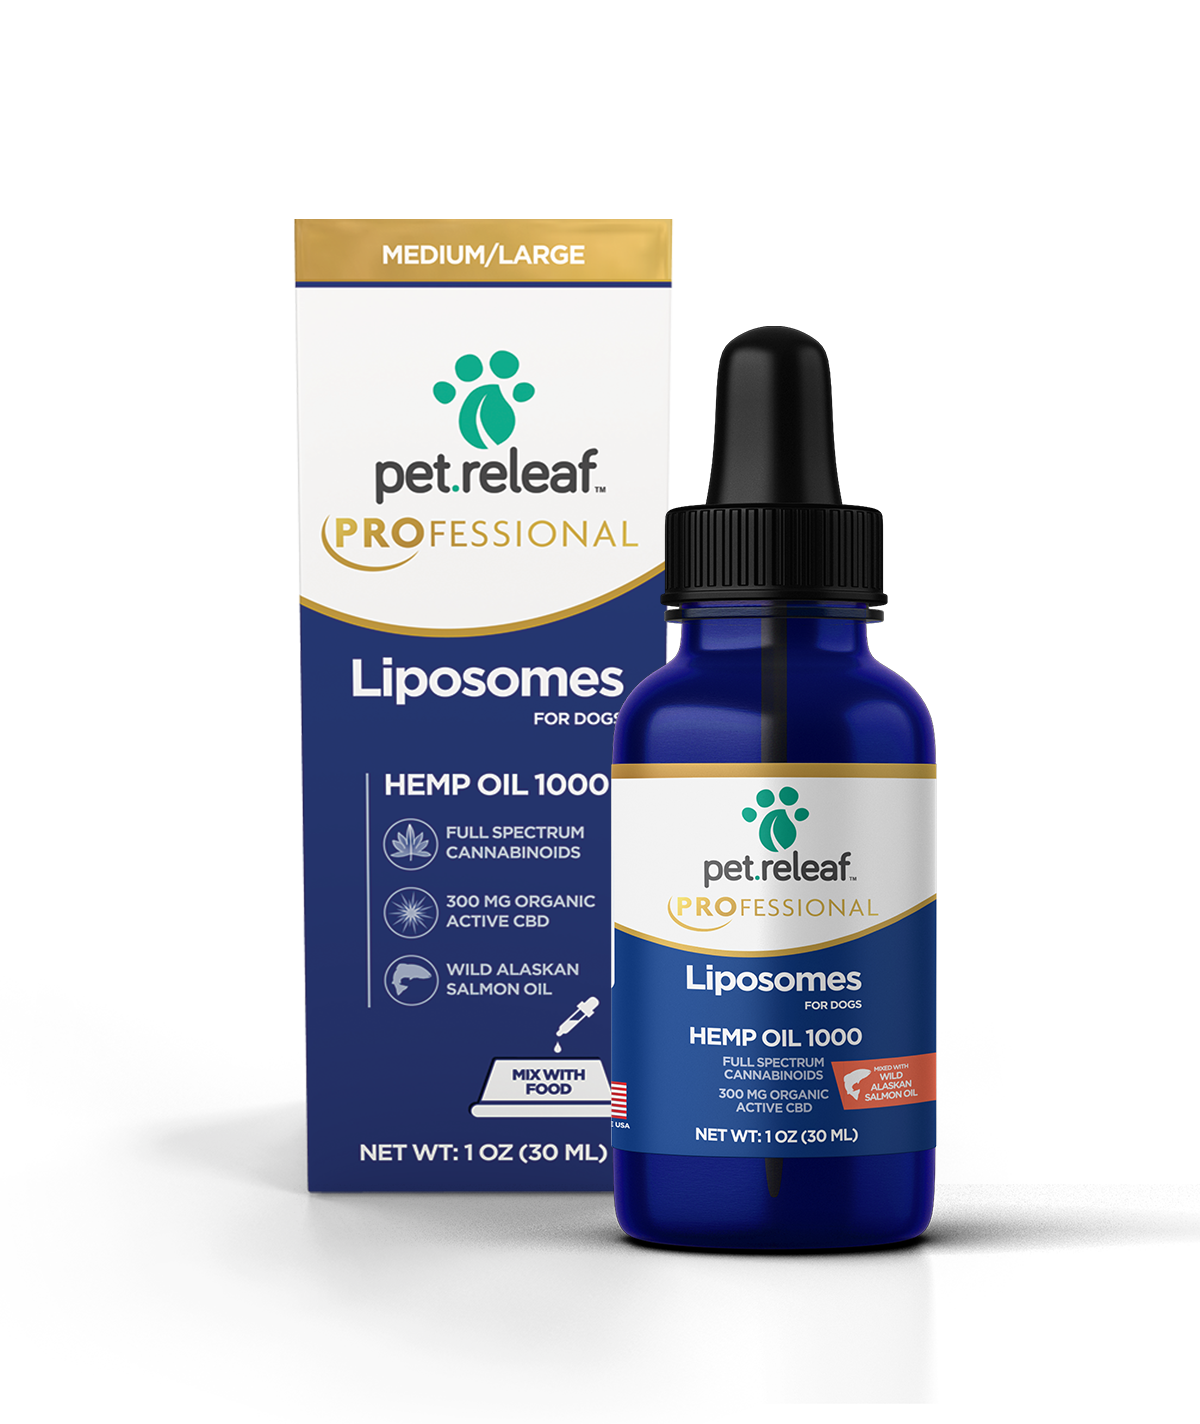 Pet Releaf Pet Releaf Hemp Oil with Liposomes CBD Supplement 1000 300mg 1oz